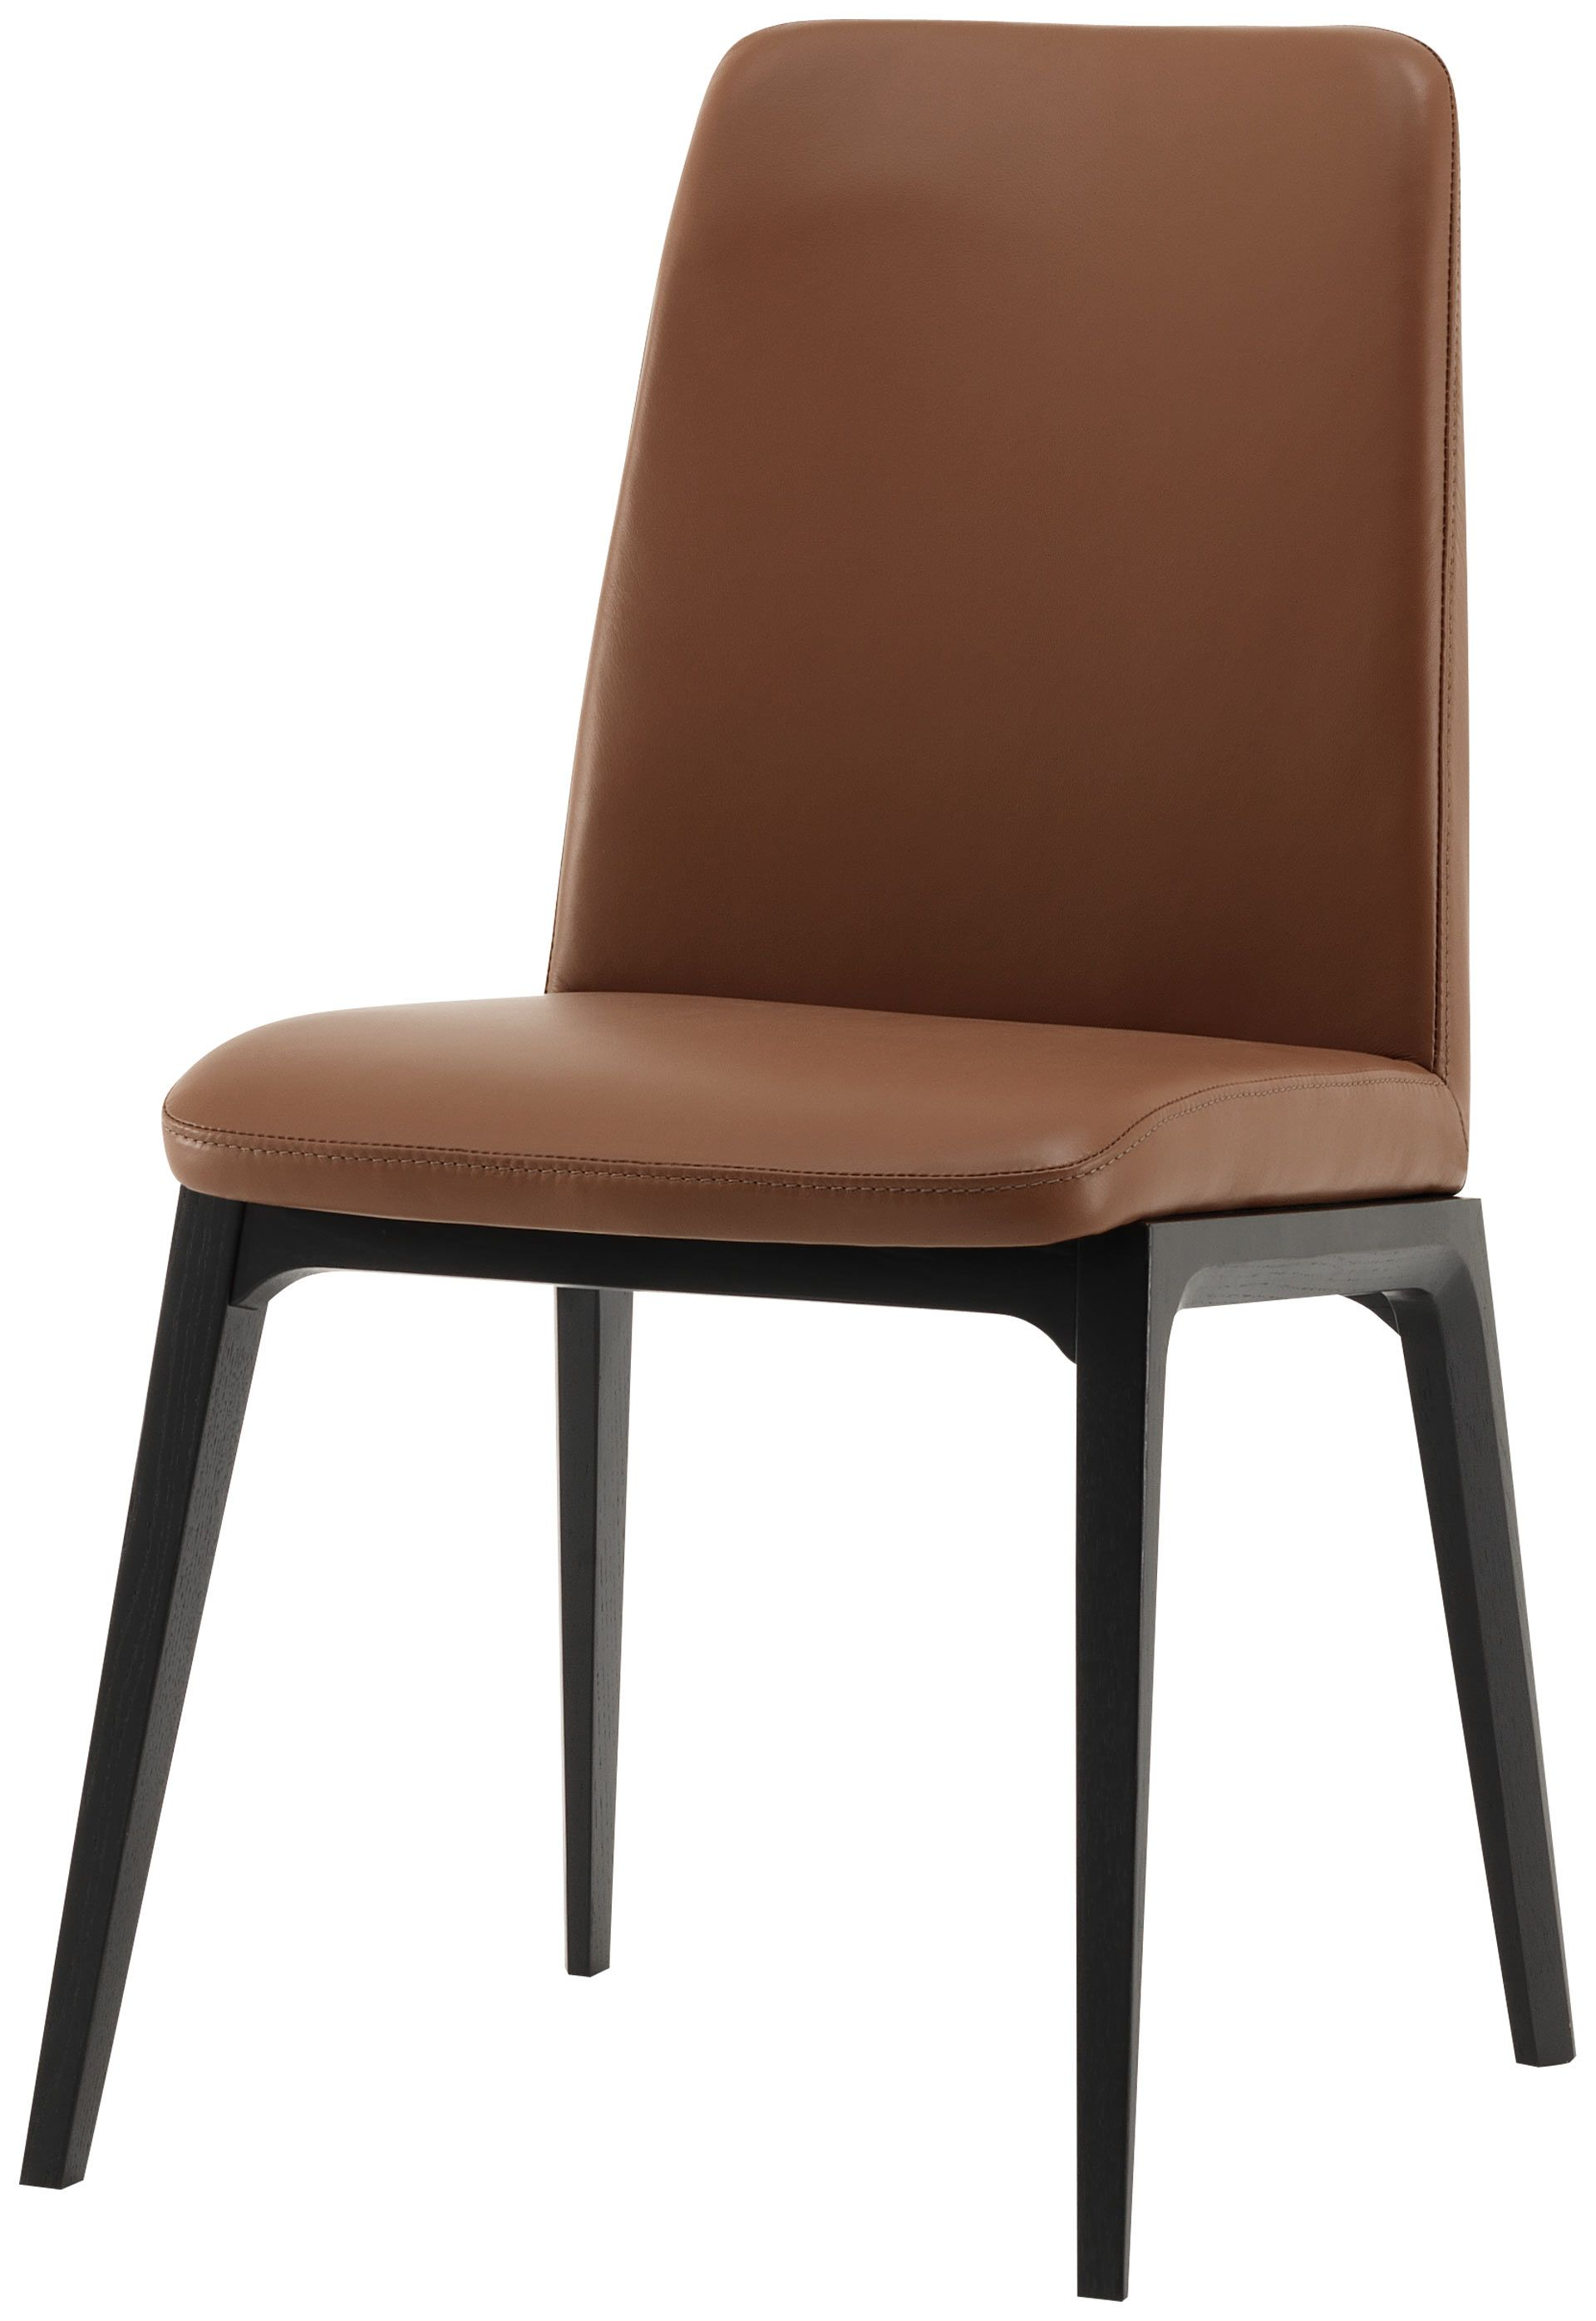 New Lausanne Chair Available In All Fabrics And Leathers As